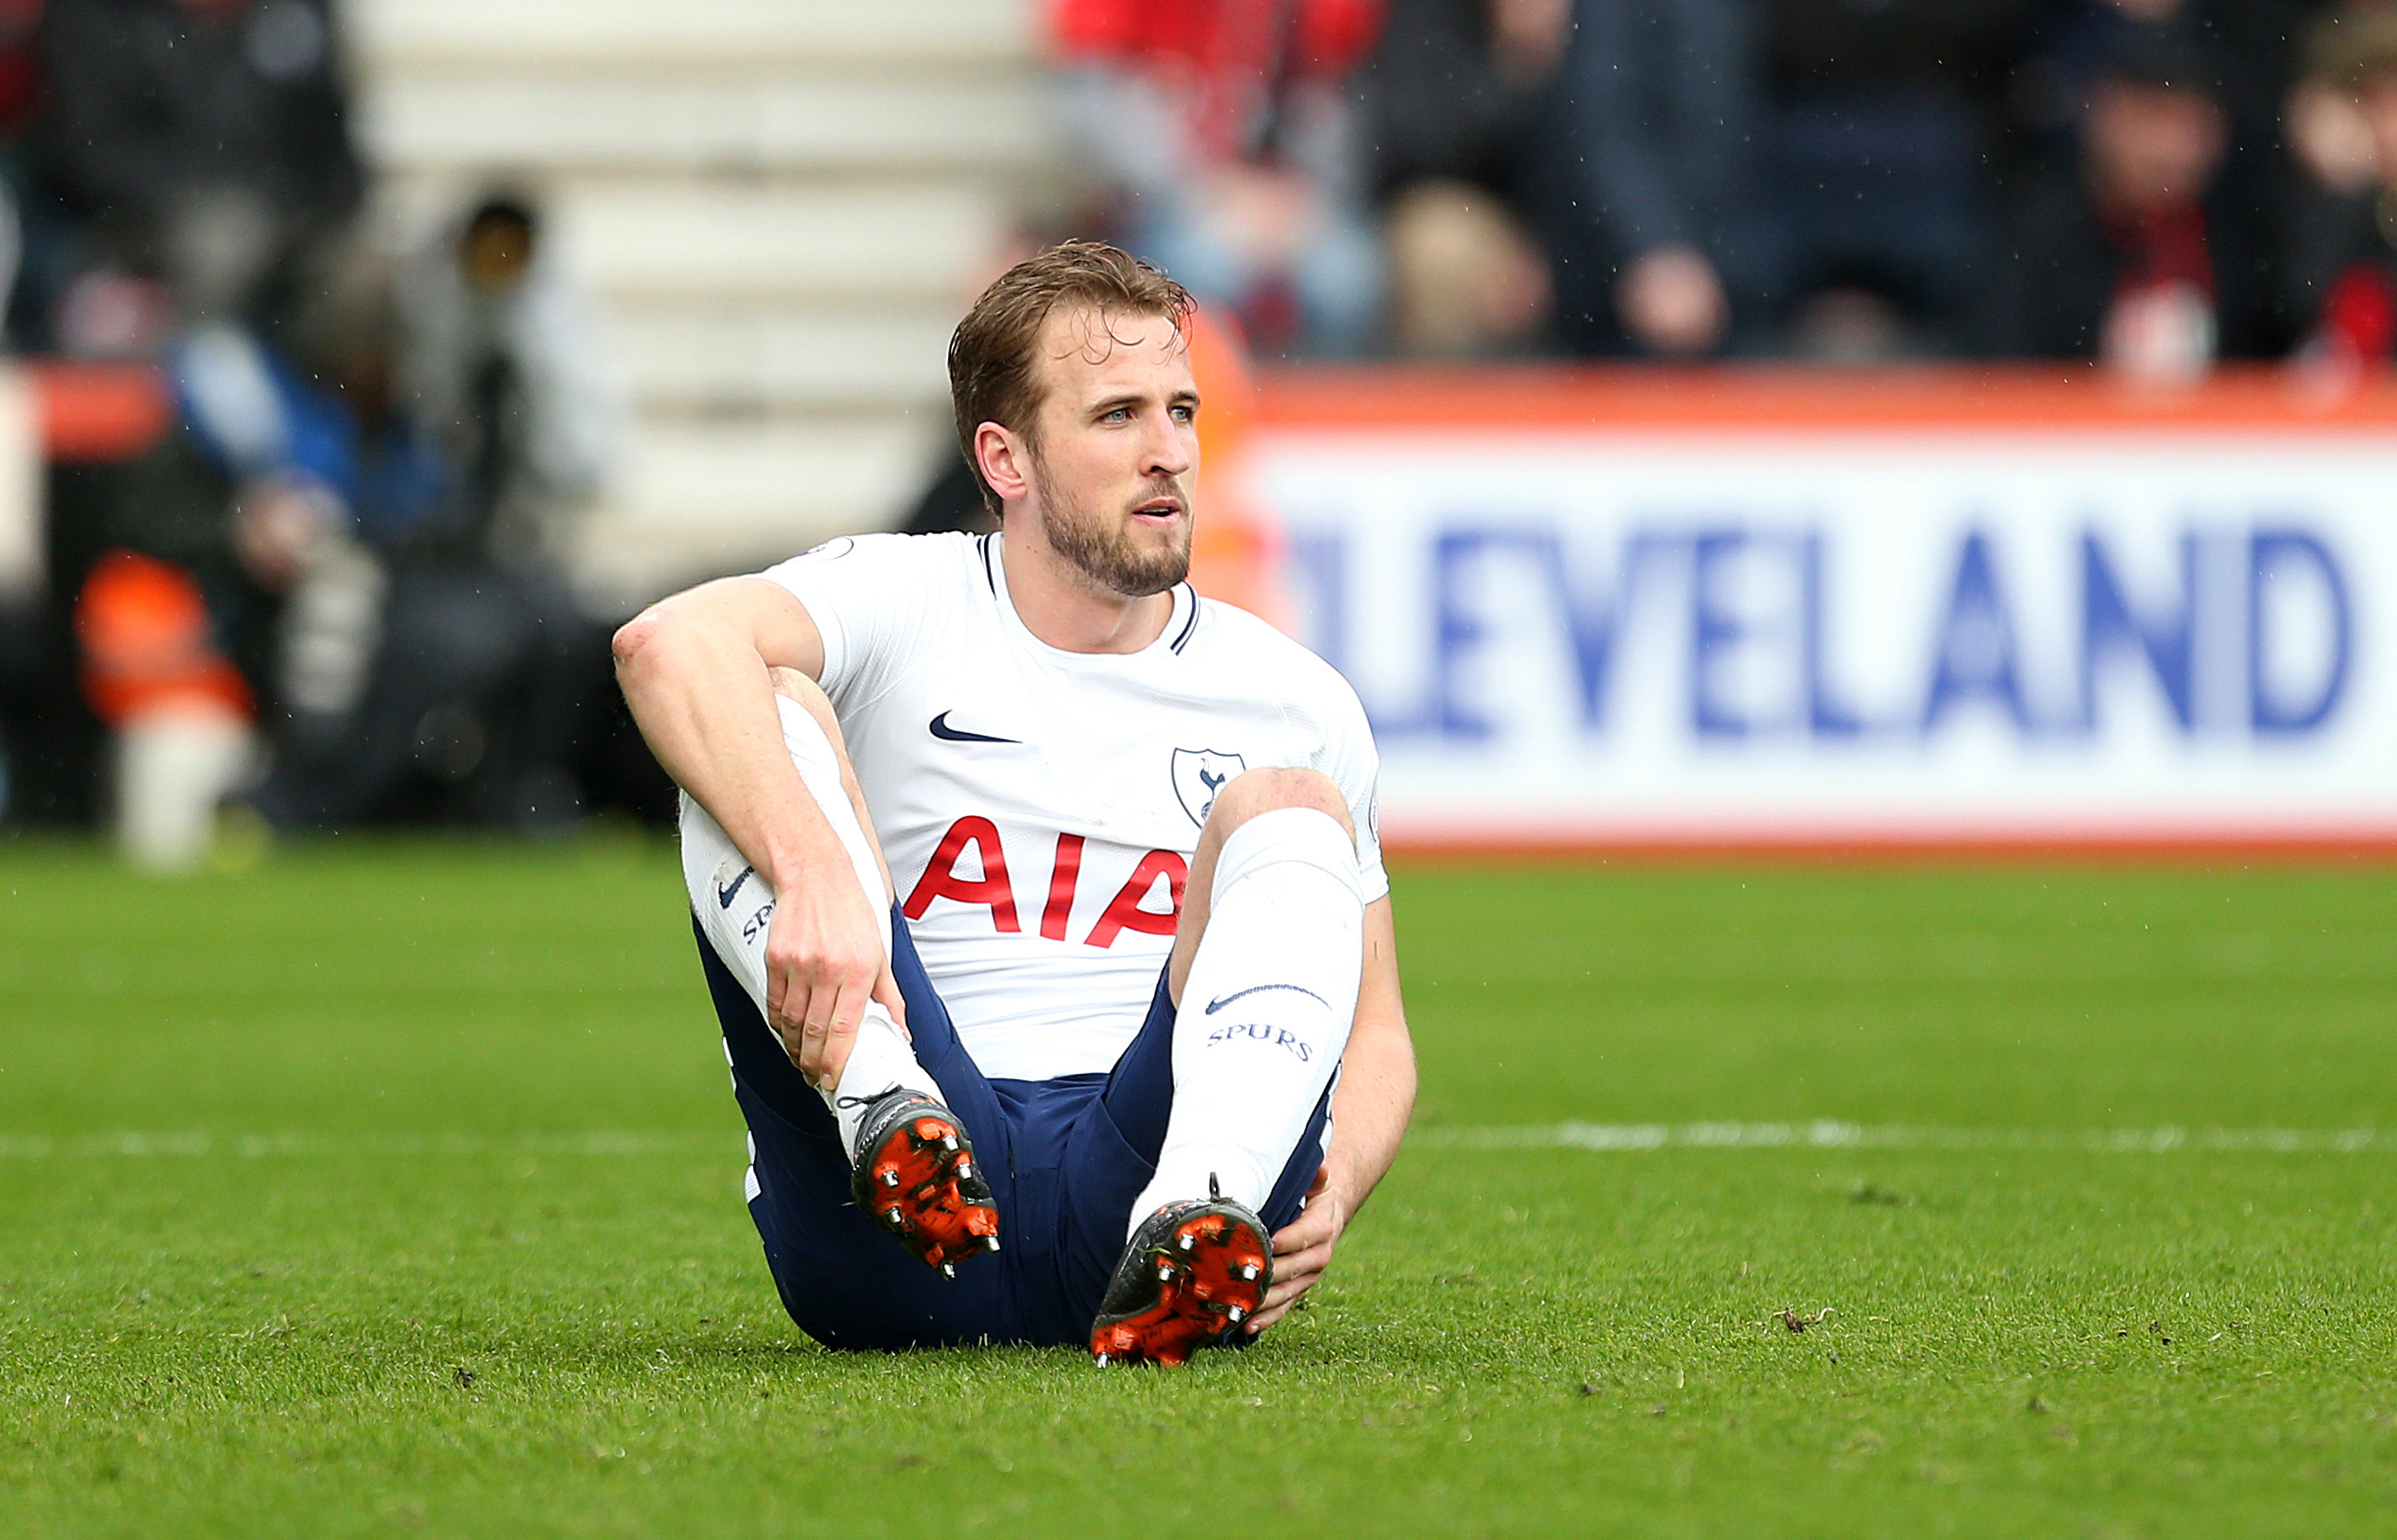 Kane sits on the pitch after suffering an injury. Image: PA